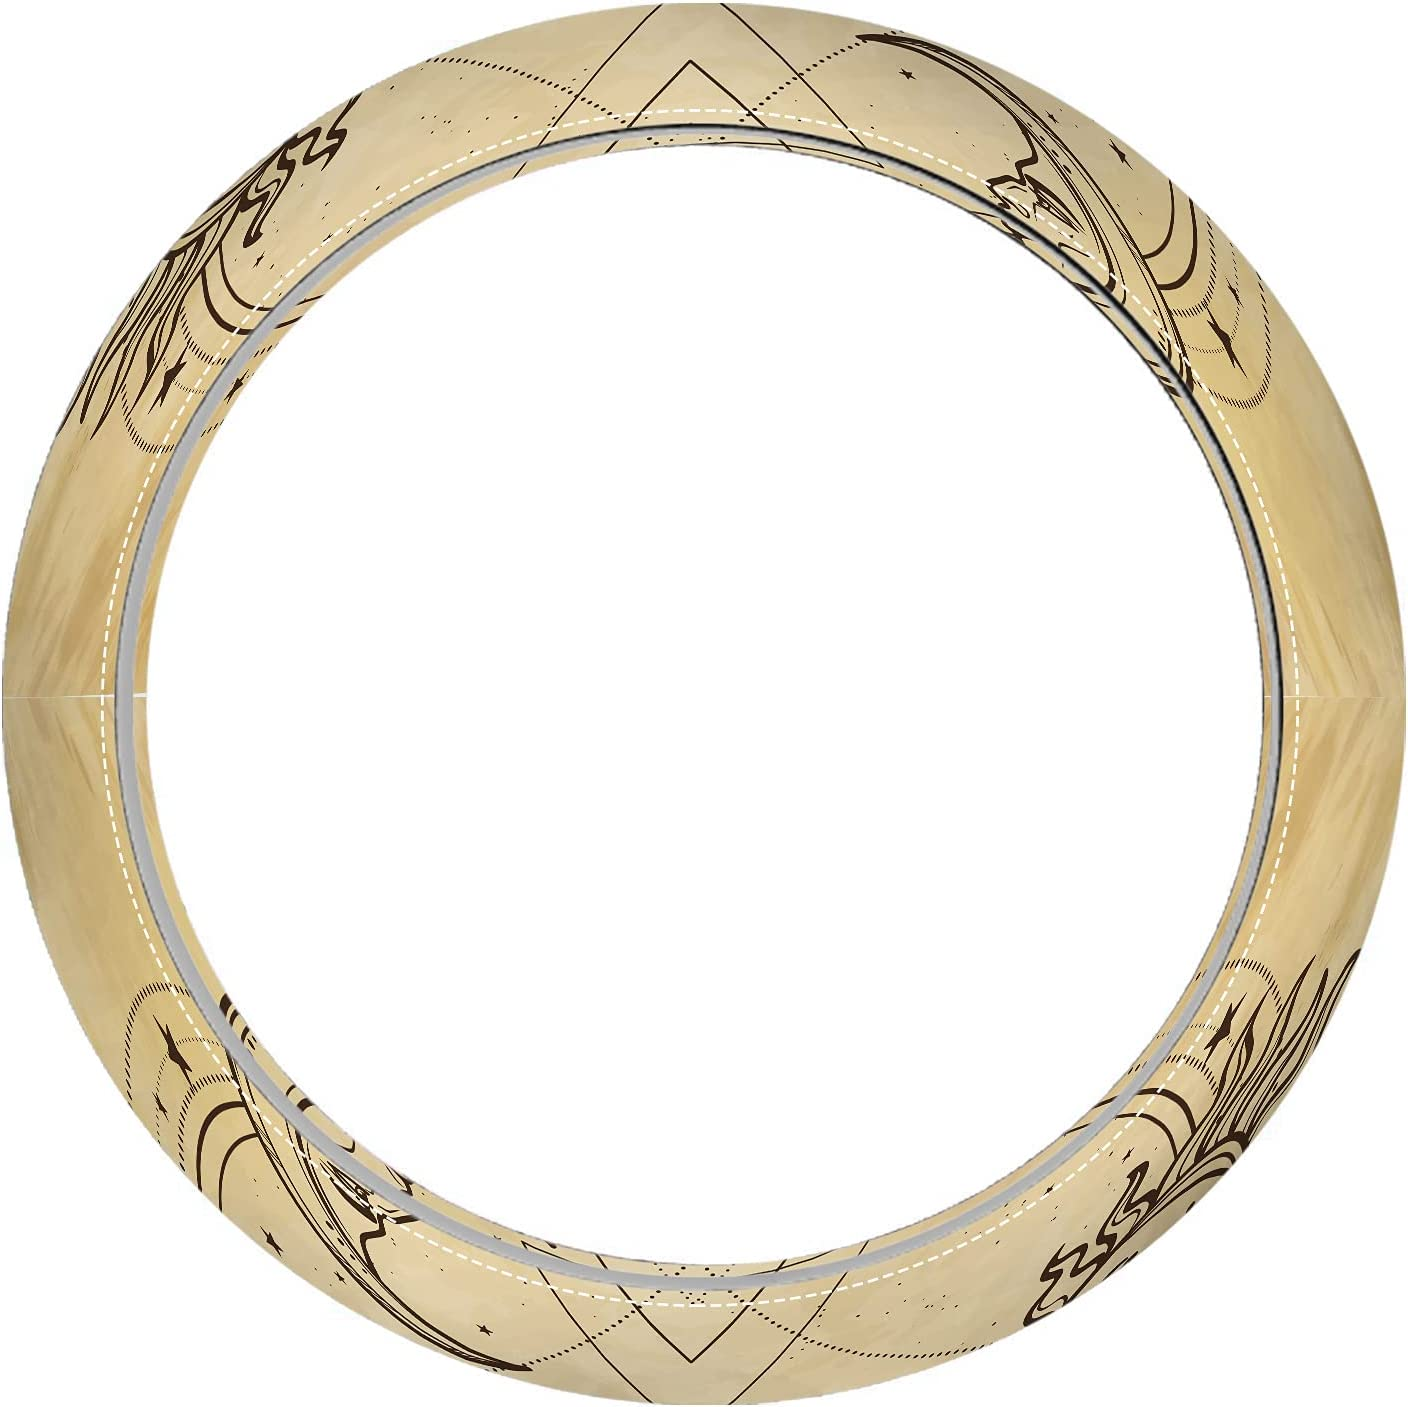 Nicokee Sun and Moon Steering Wheel Mystical Face St Free shipping anywhere in Safety and trust the nation Human Cover